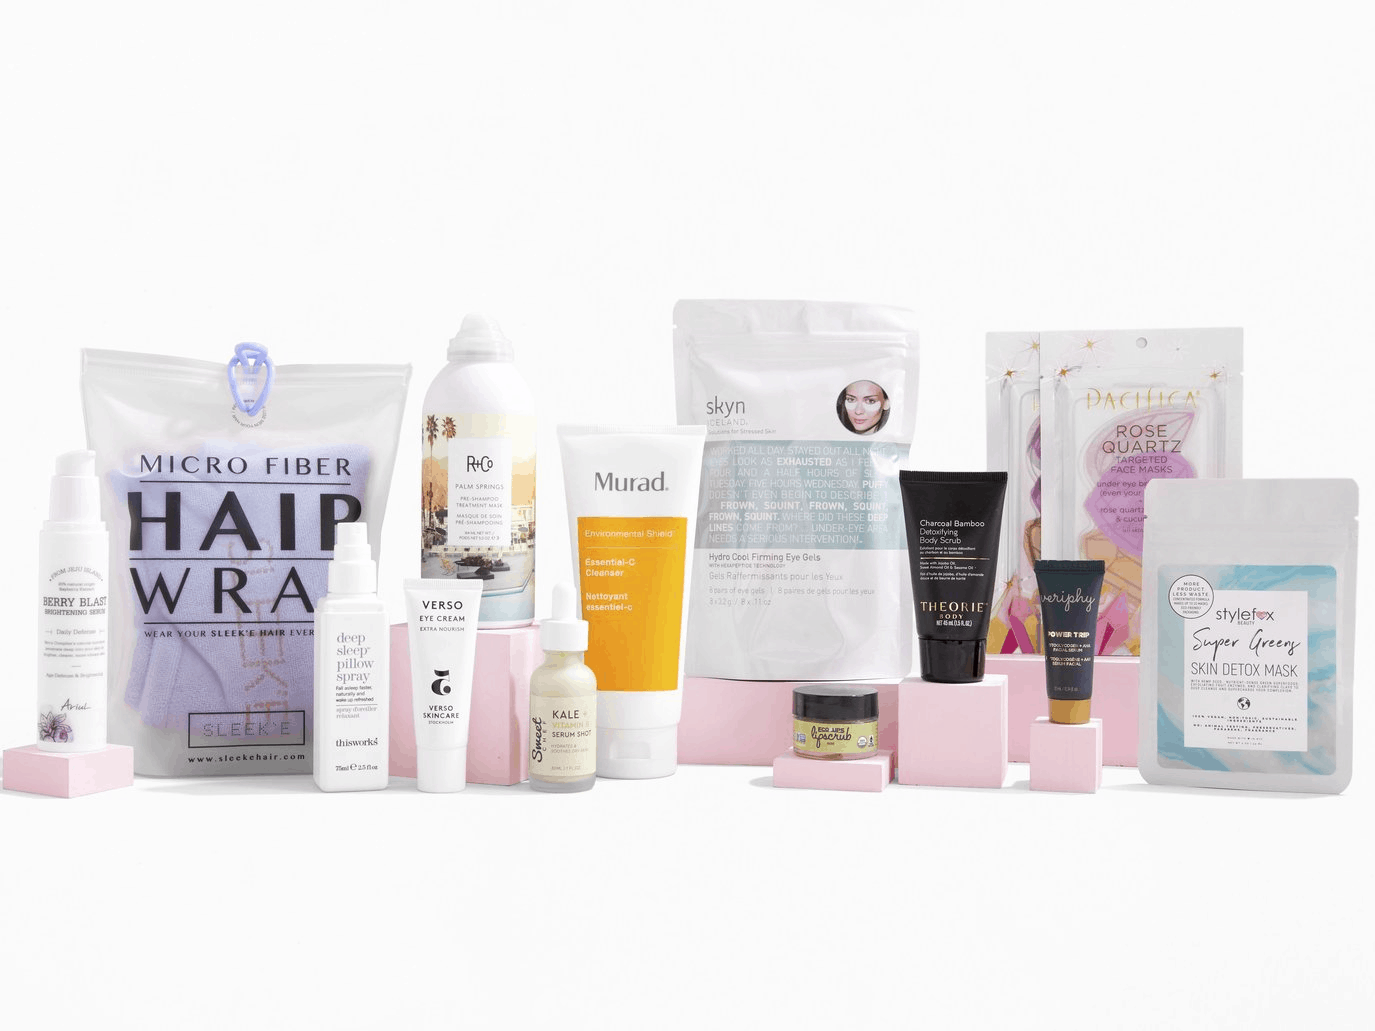 Ipsy Haul Self Care Faves Kit Available Now!